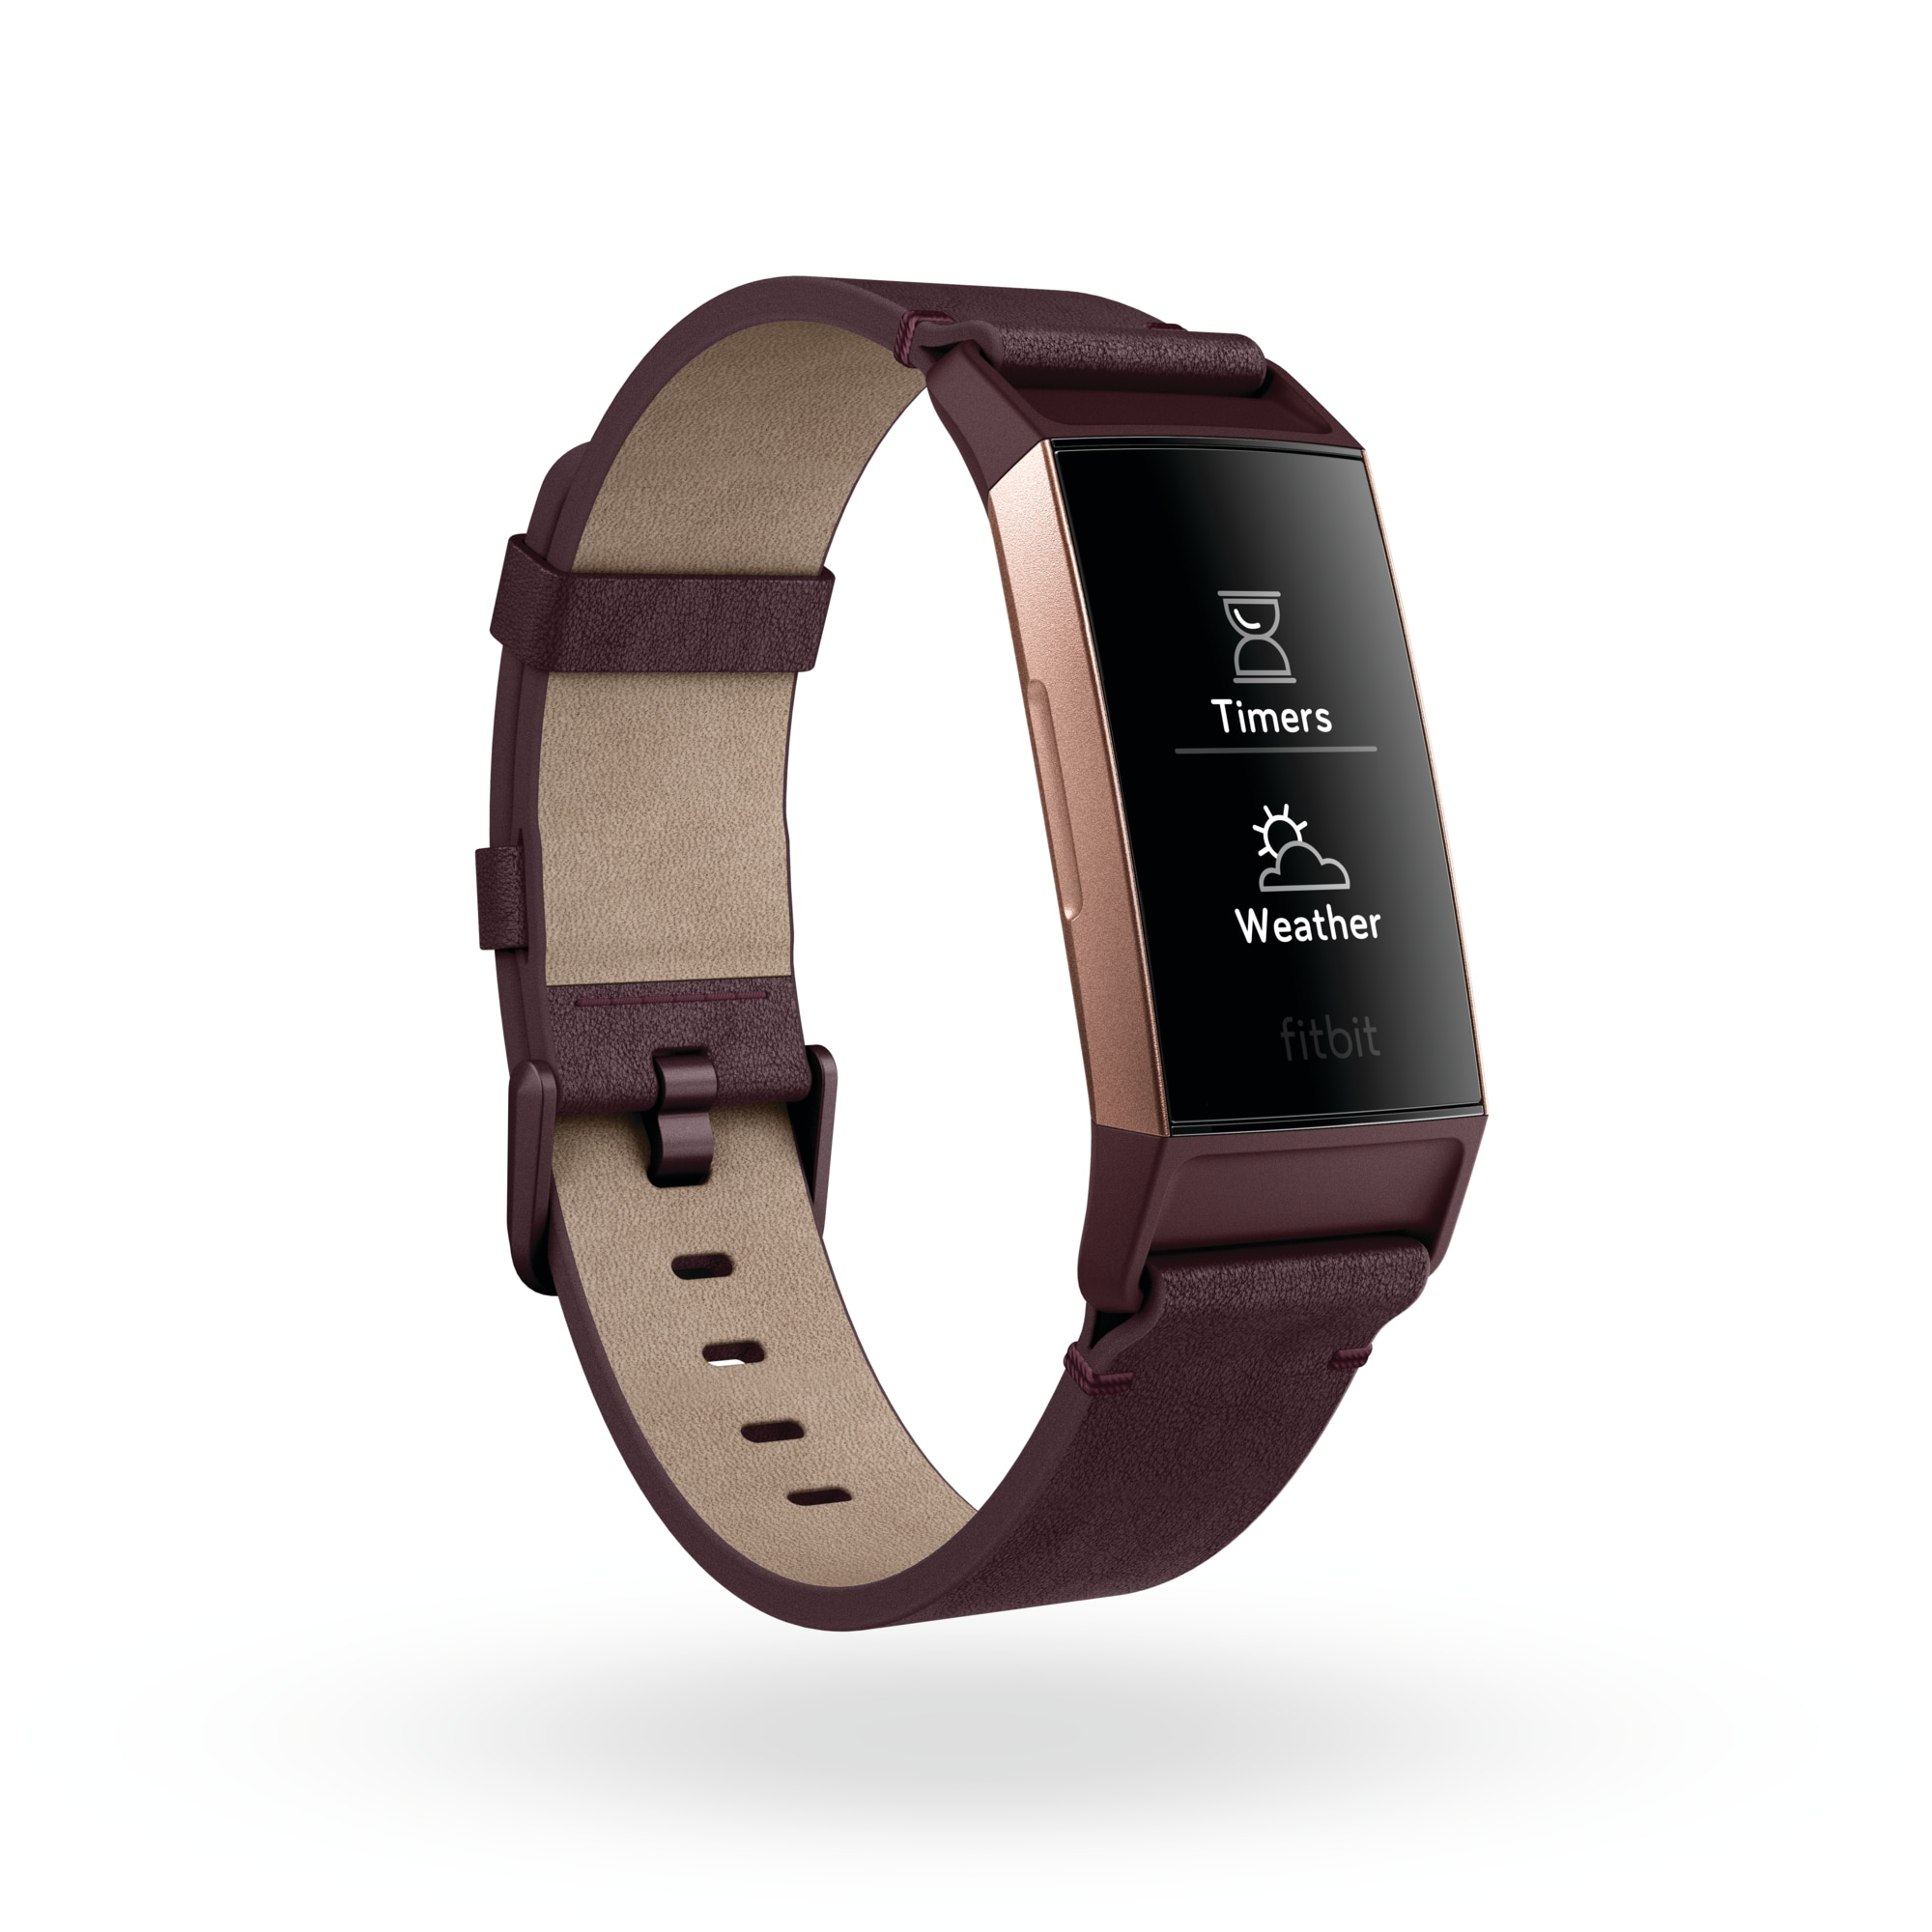 Fitbit_Charge_3_3QTR_Leather_Plum_Rose_Gold_Weather_Timer_App_Switcher_Shadow